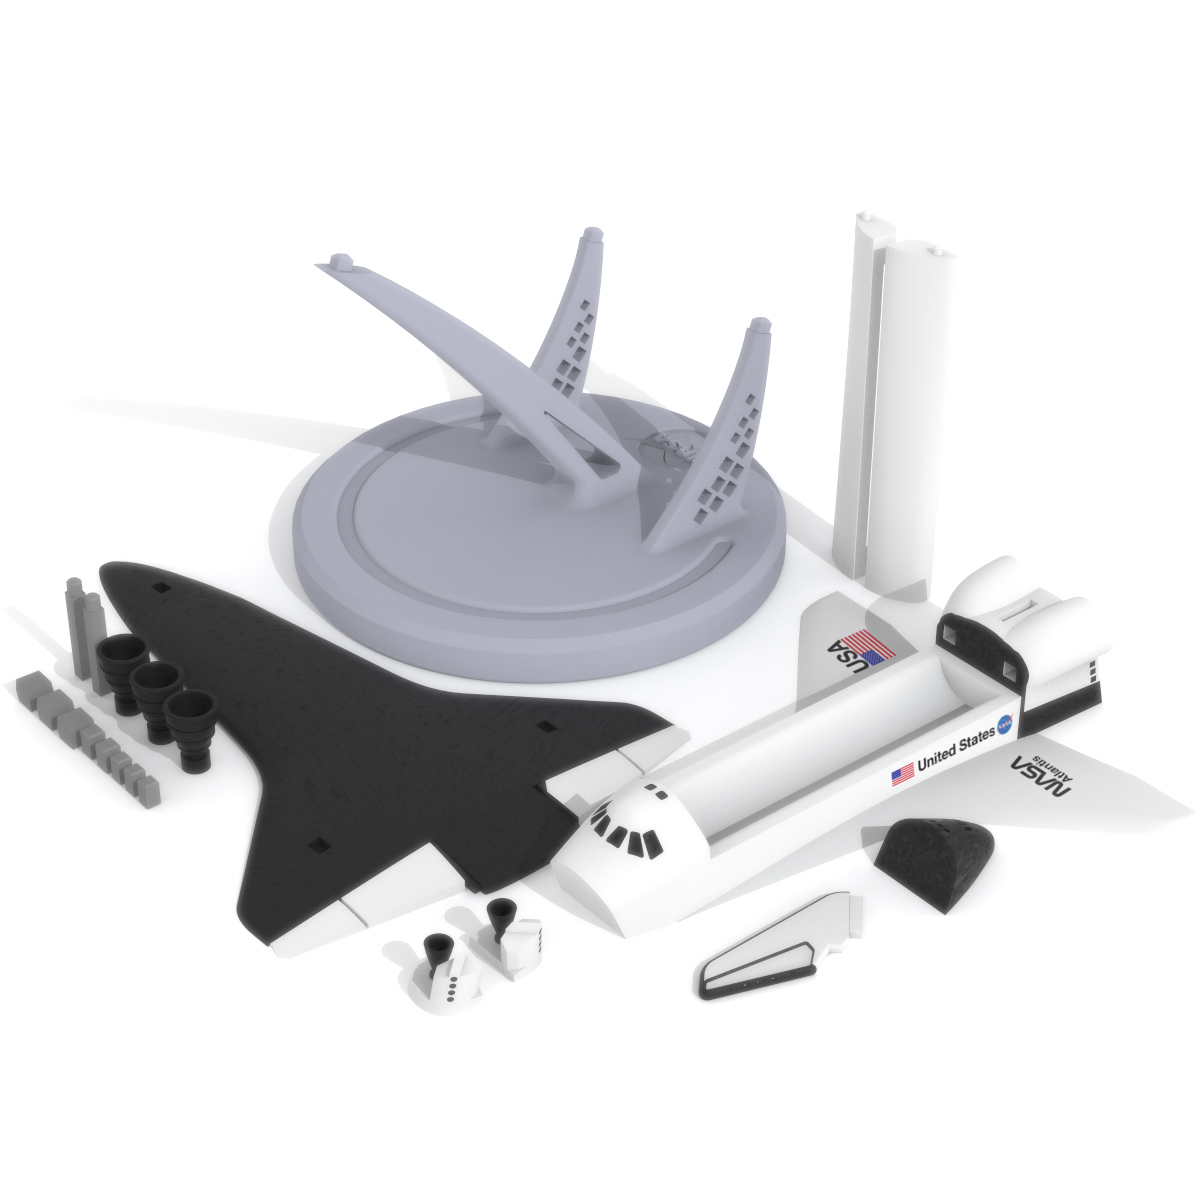 Space Shuttle Atlantis Print Bed, 3D Printer Models